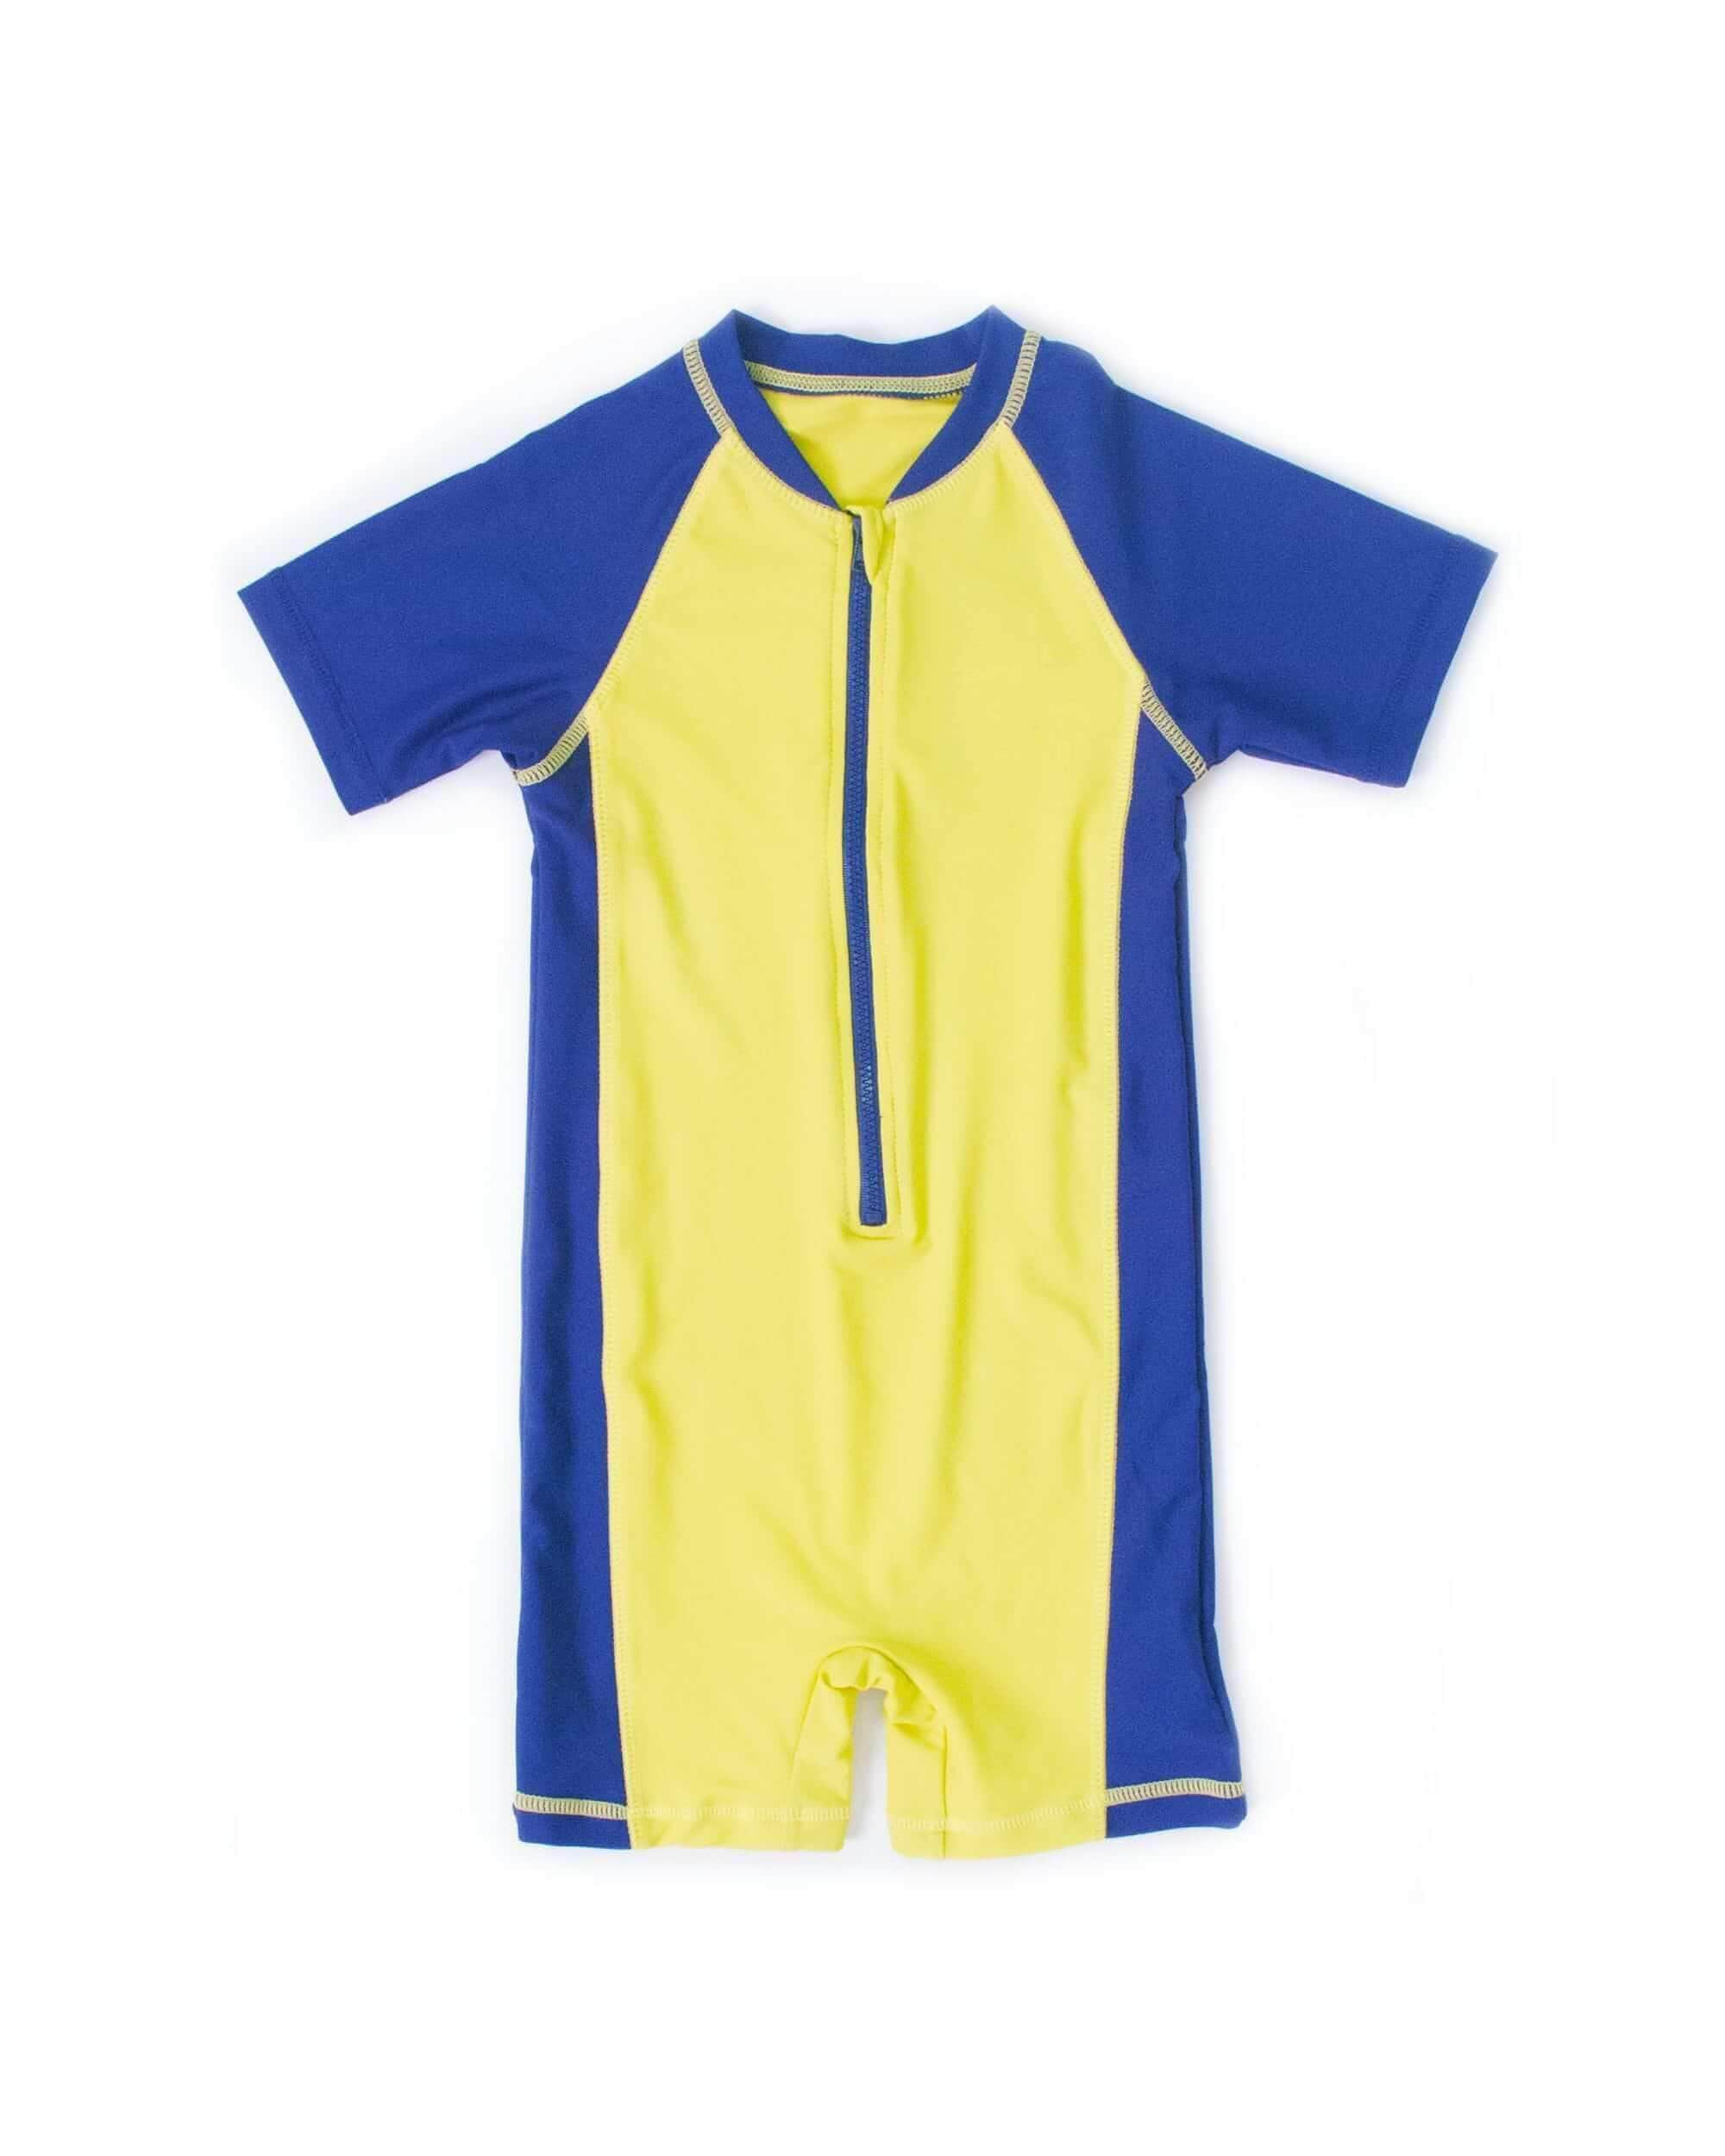 FUNFIT UPF50+ Junior Sunsuit (Unisex) in Neon Fluro/ Navy